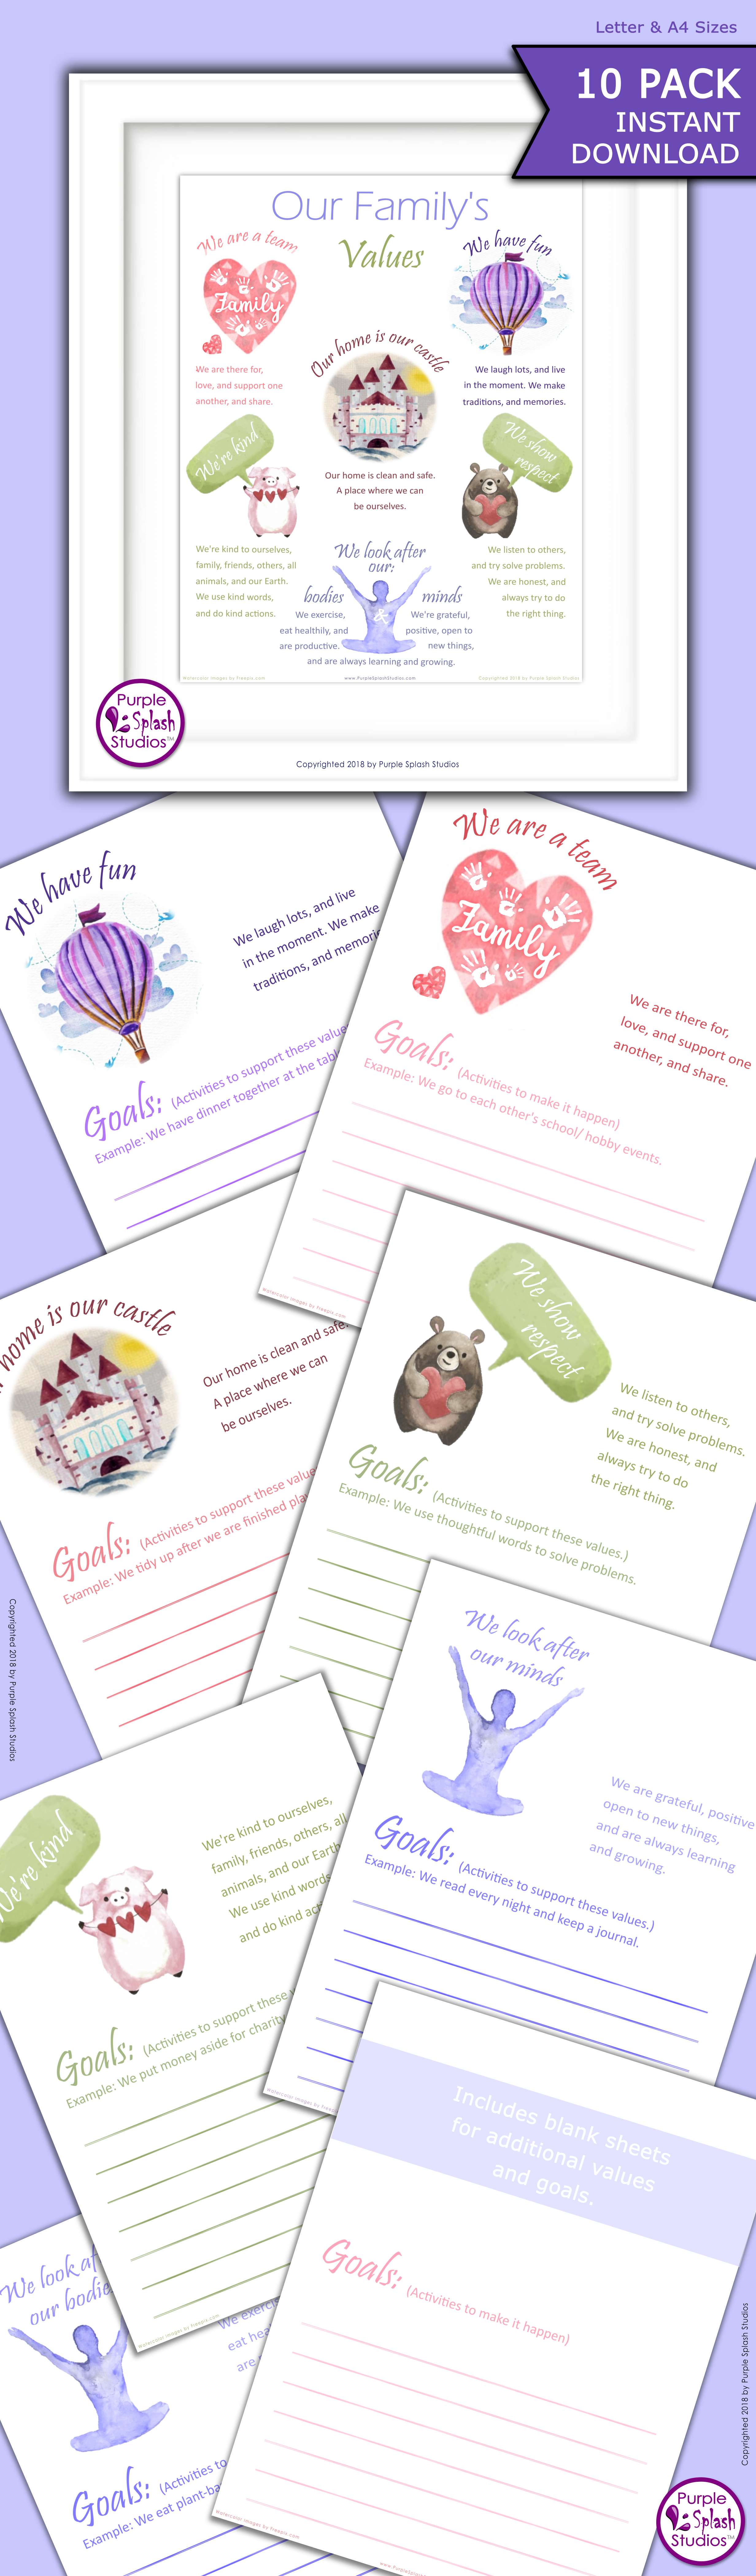 Family Values And Goal Worksheet Printable Pack These